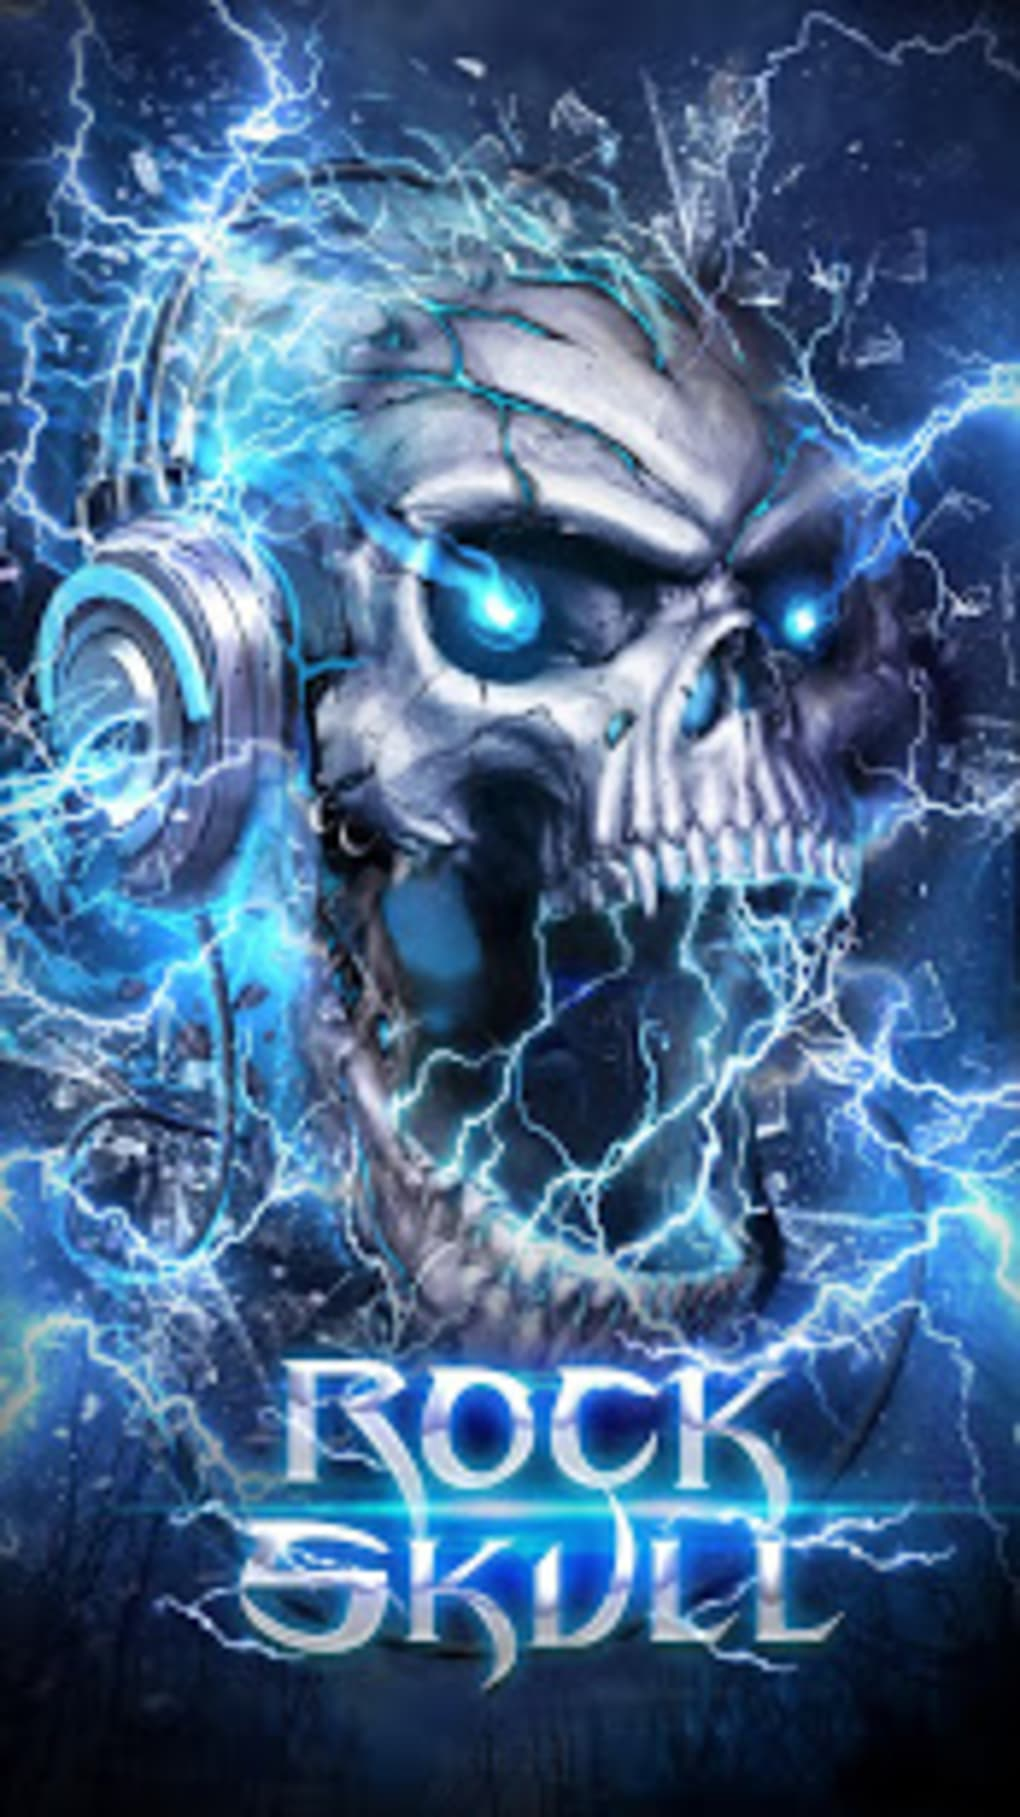 Electric Skull Live Wallpaper APK For Android Download